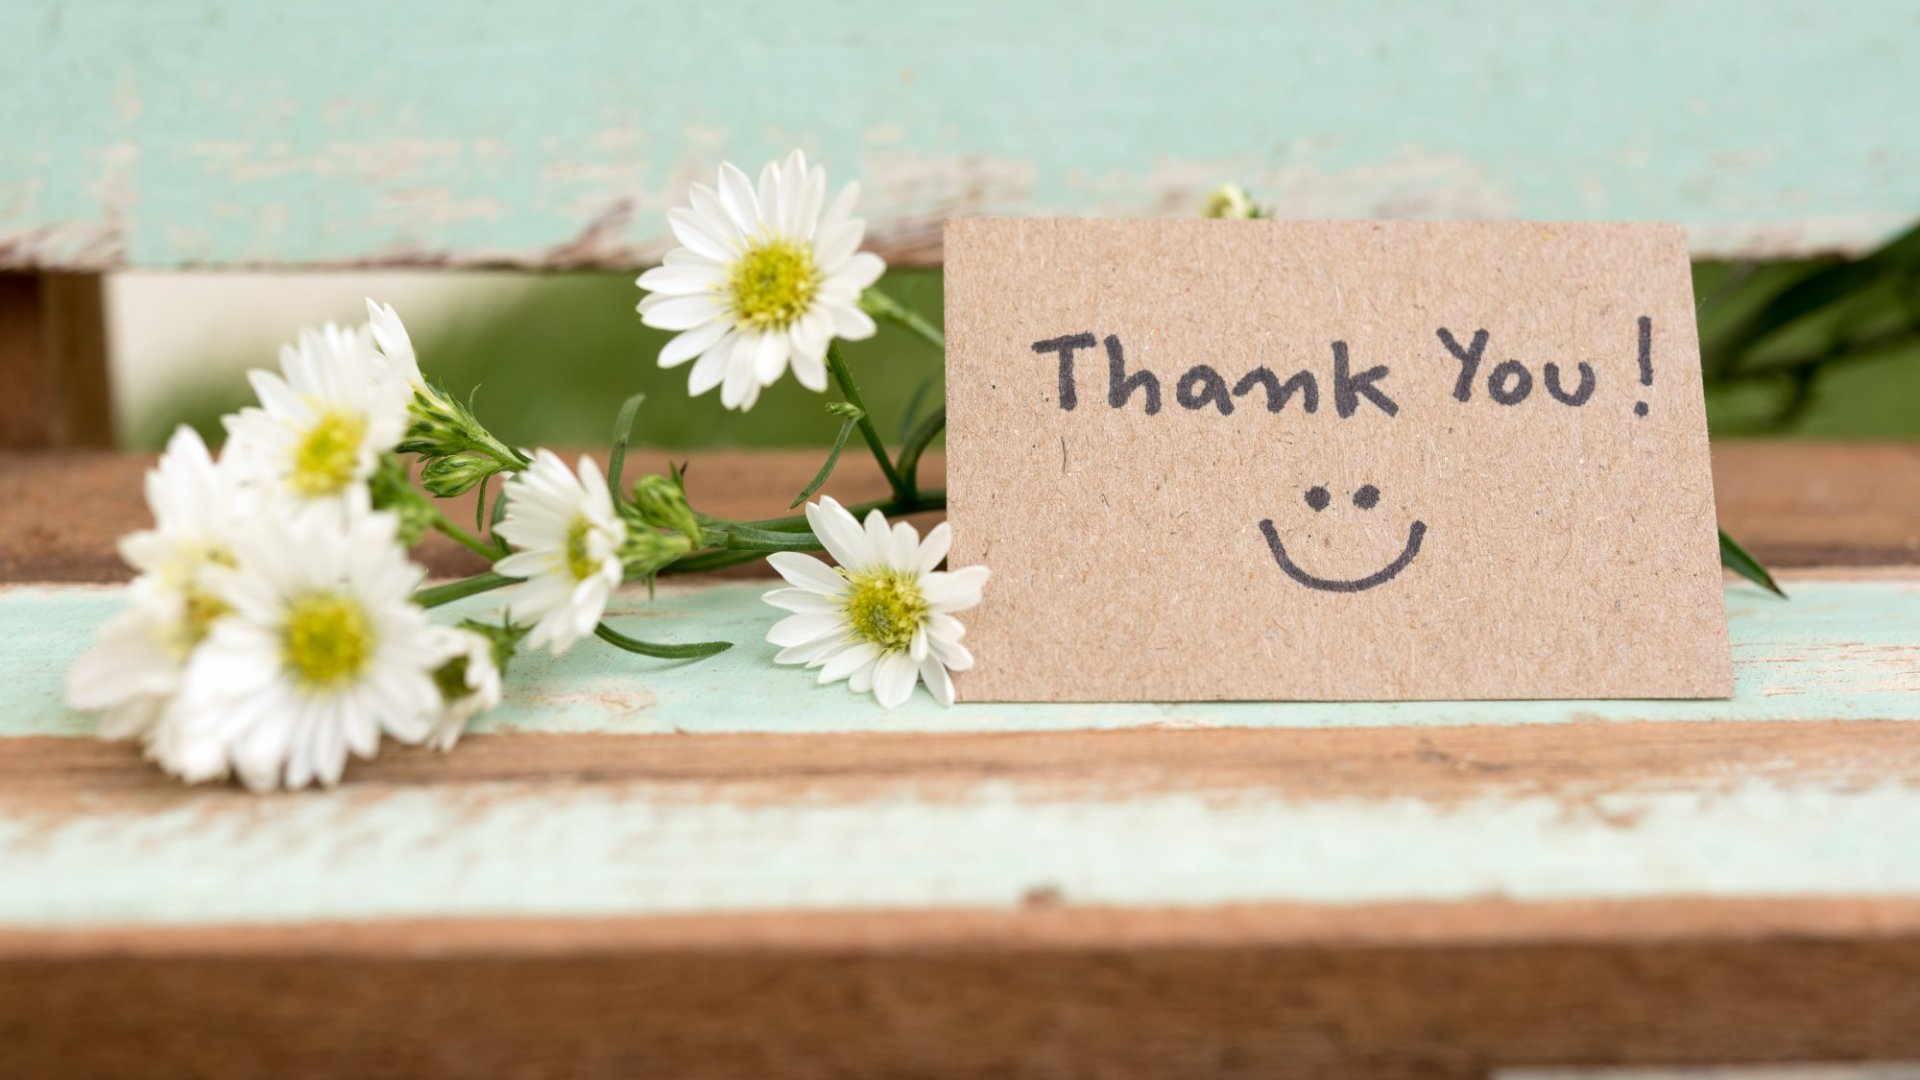 No, You Don't Have to Say Thank You Constantly. Here's Why, According to a New Study